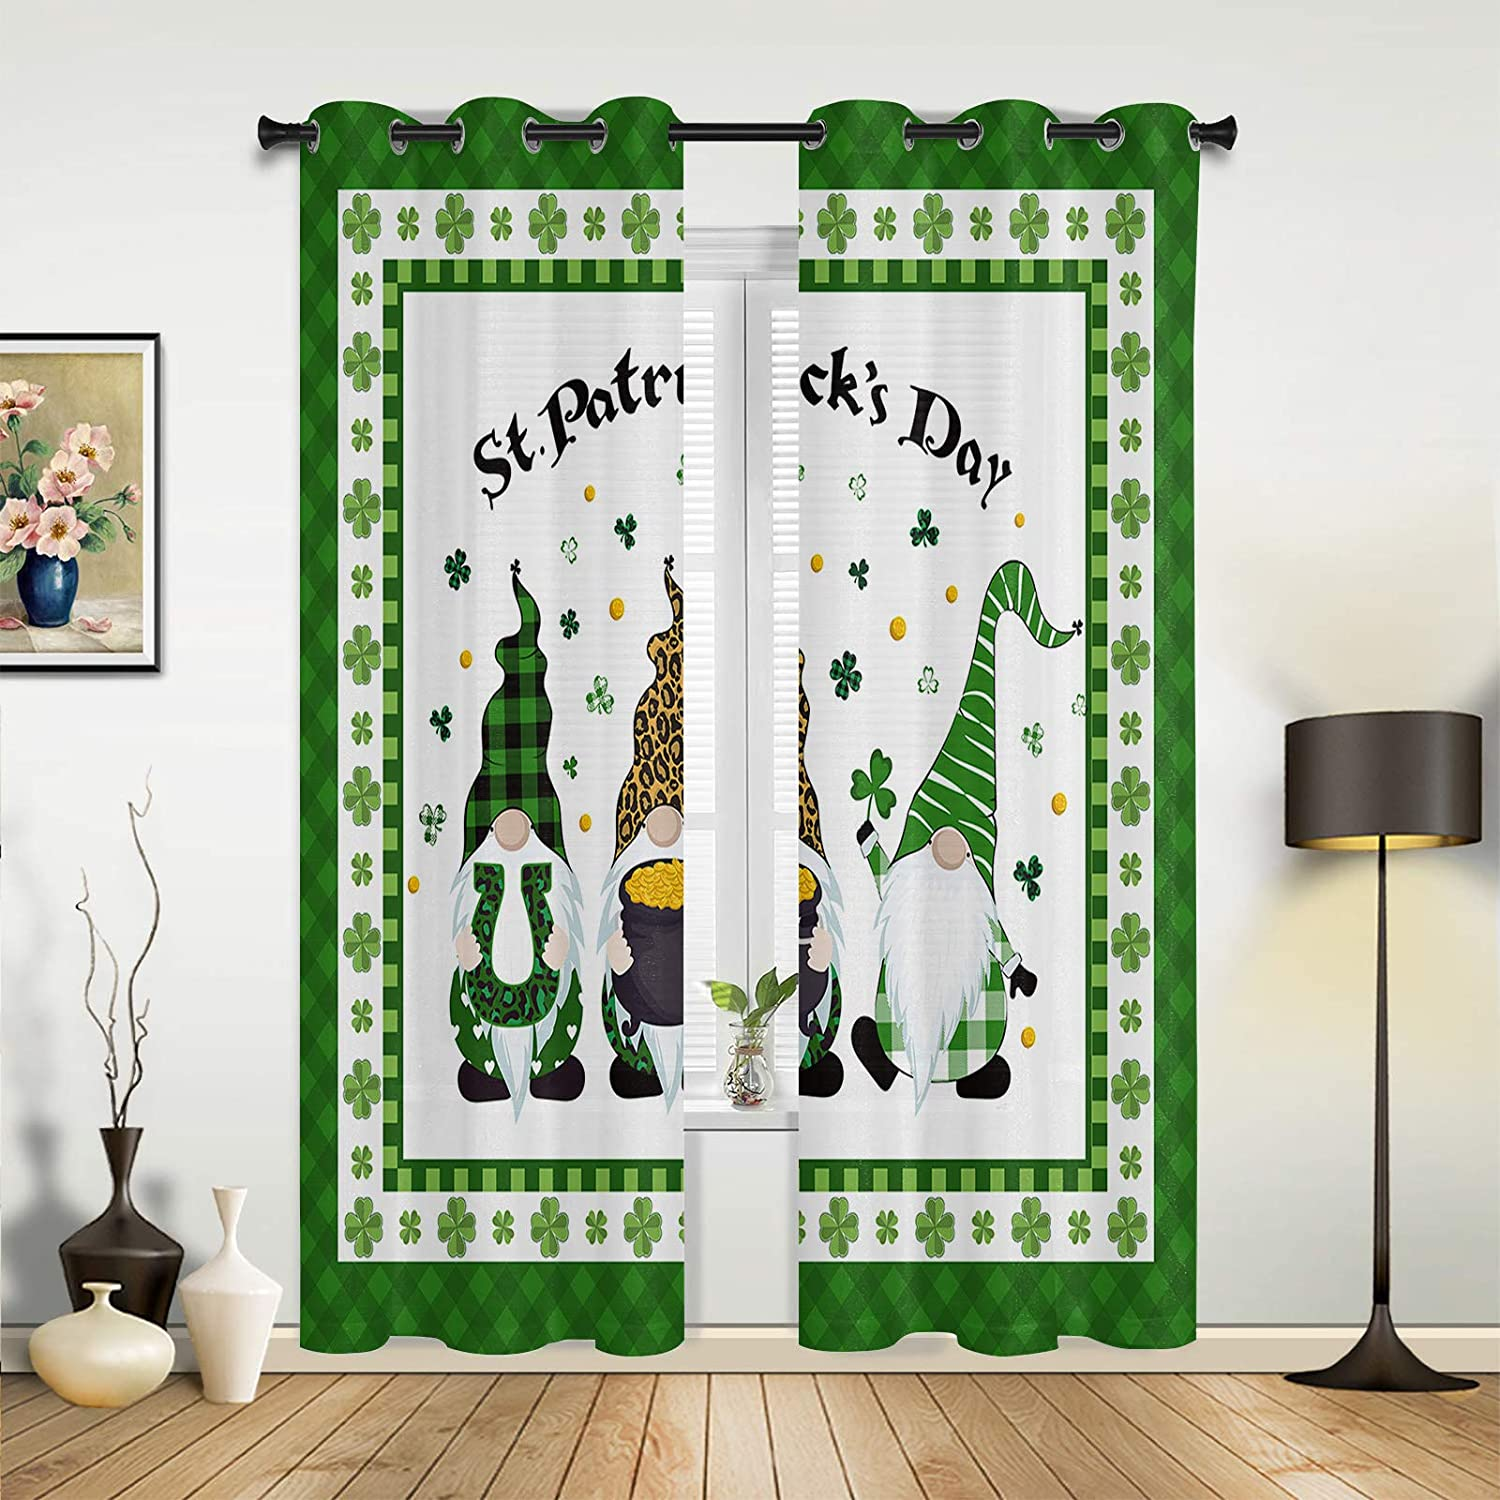 Window Sheer Curtains Superior for Genuine Free Shipping Bedroom Living St. Room Happy Patrick'